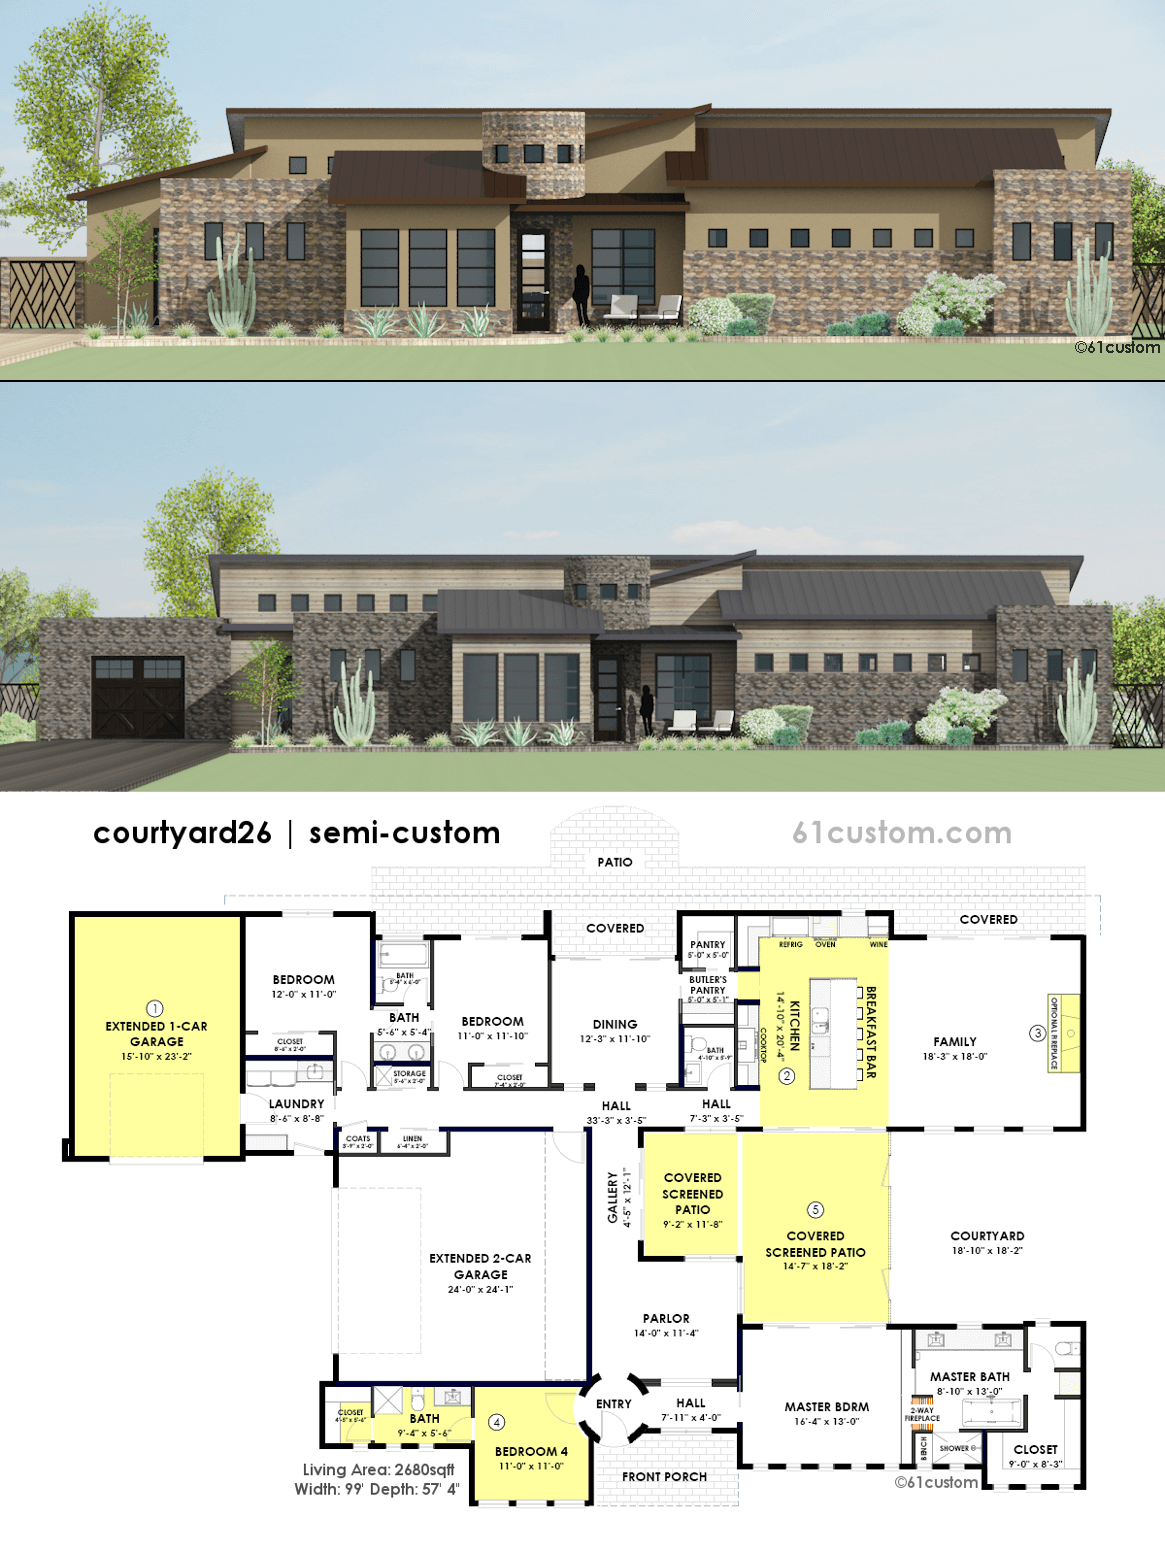 Contemporary side courtyard house plan 61custom for Modern houses floor plans